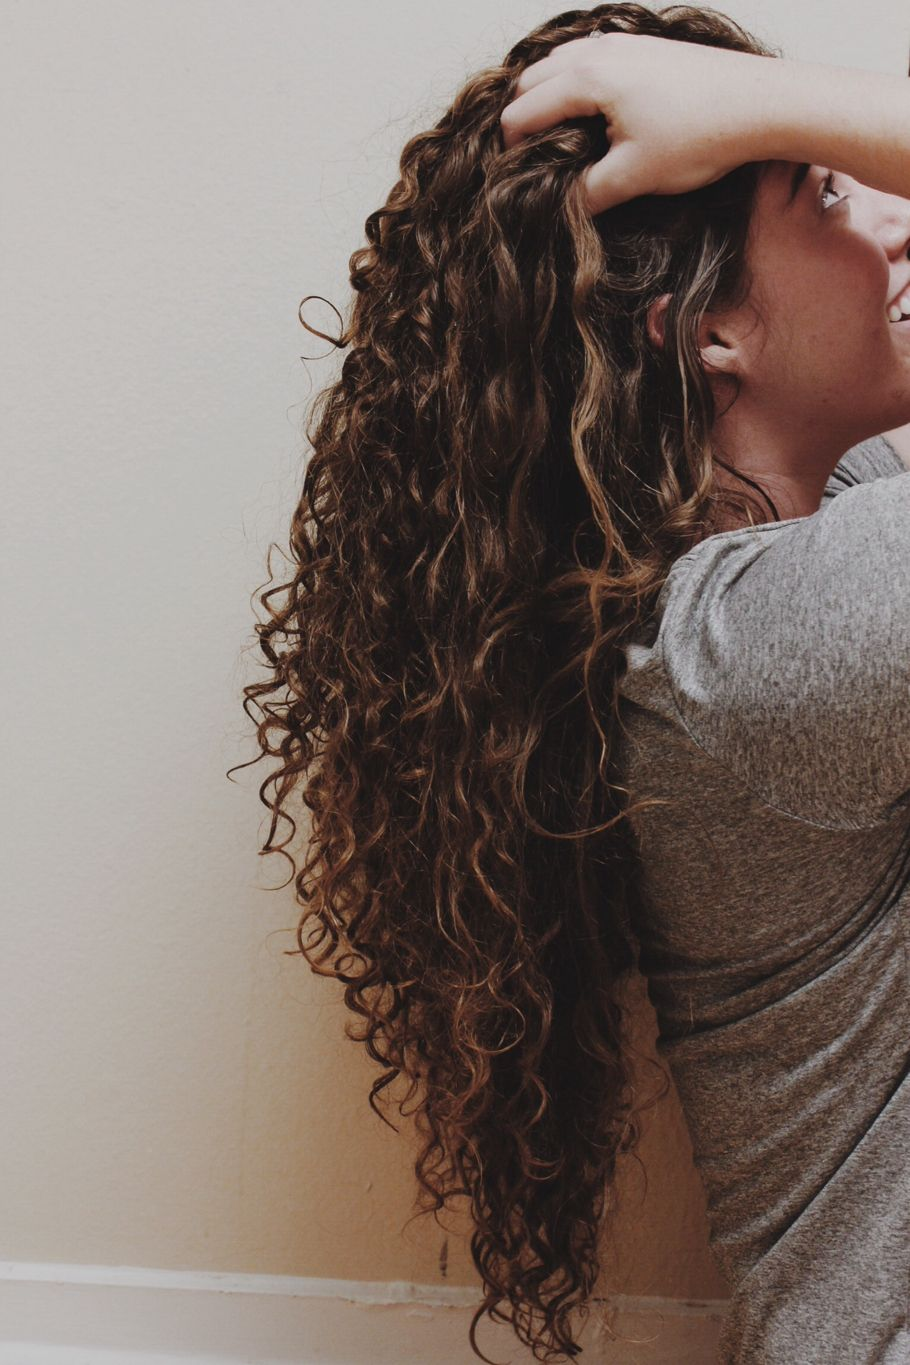 See more curly hair styles on http://pinmakeuptips.com/best-hot-curly-hair-styles/